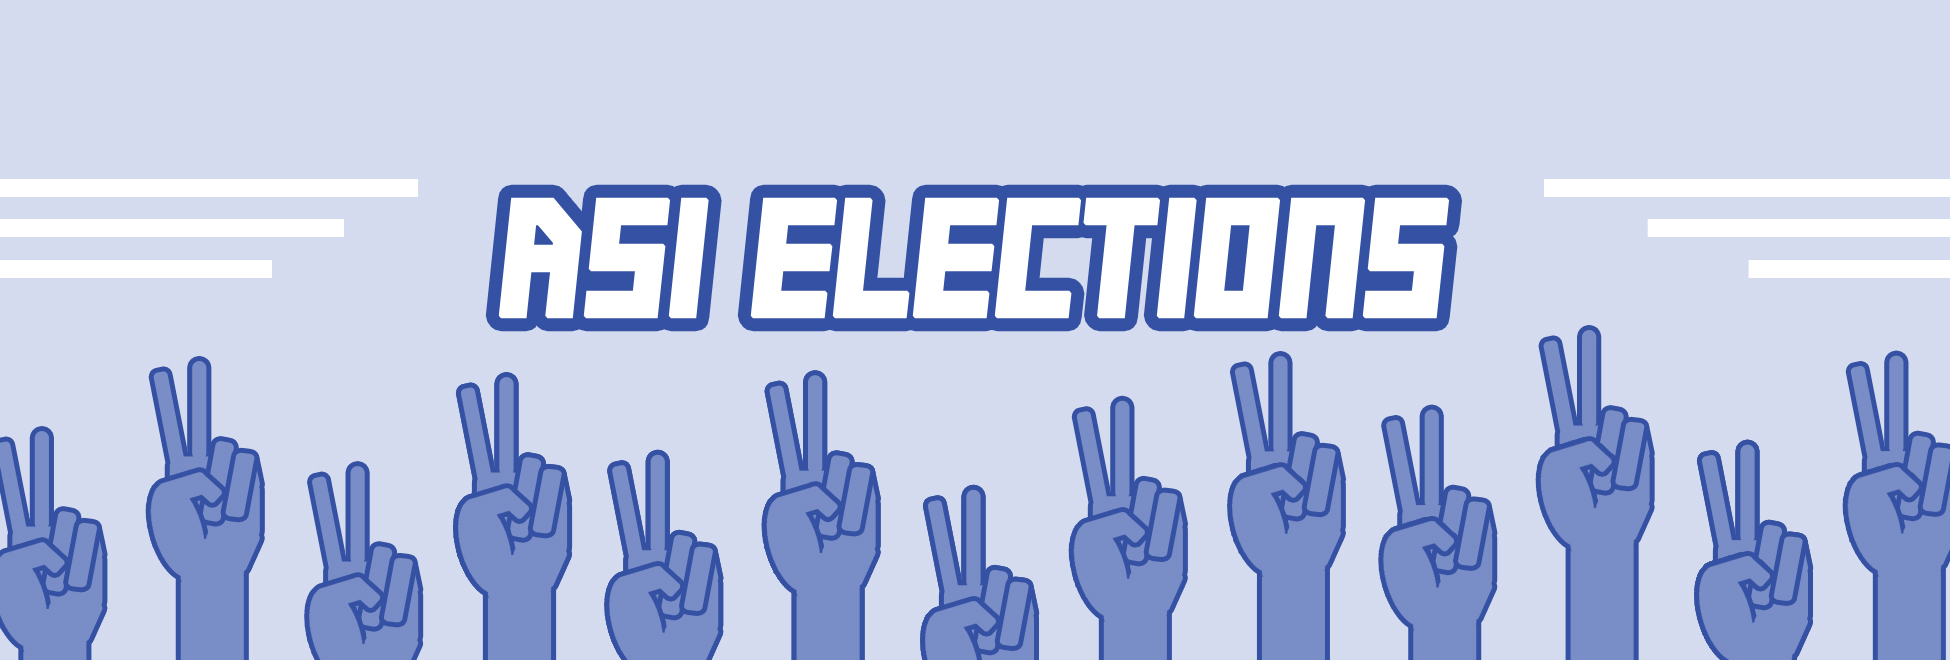 ASI Elections with Hands